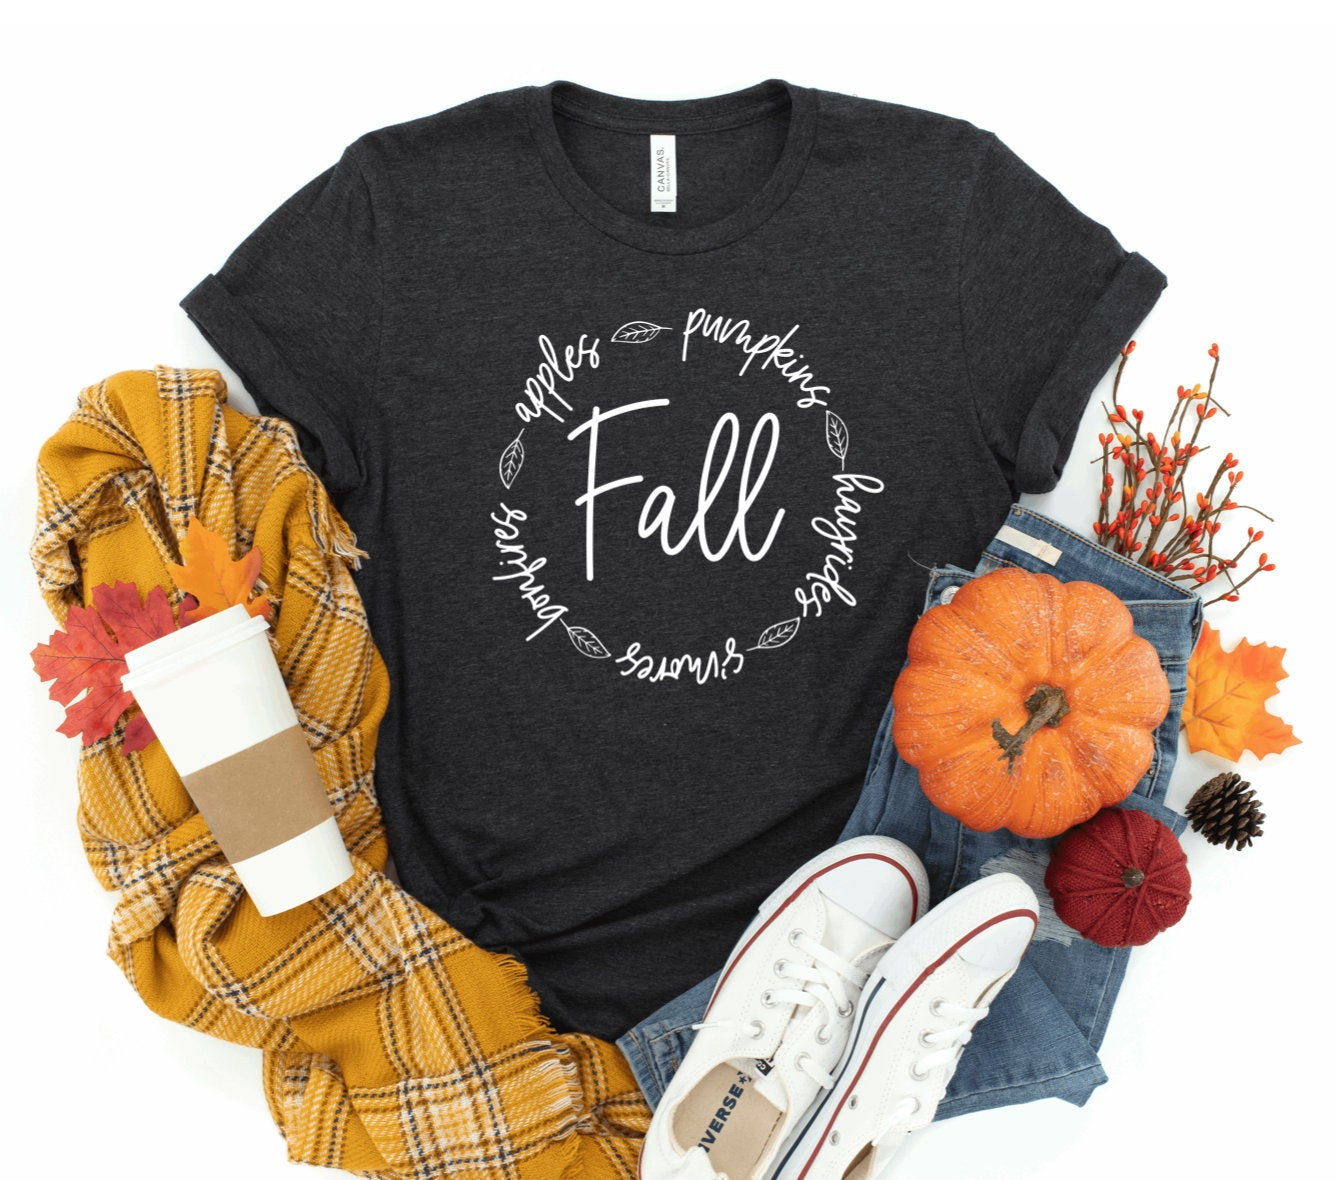 Fall Unisex T-shirt - Fall T-shirt - Autumn Shirt - Pumpkin Shirt - Fall Apples Pumpkins Hayrides Smores Bonfires Shirt